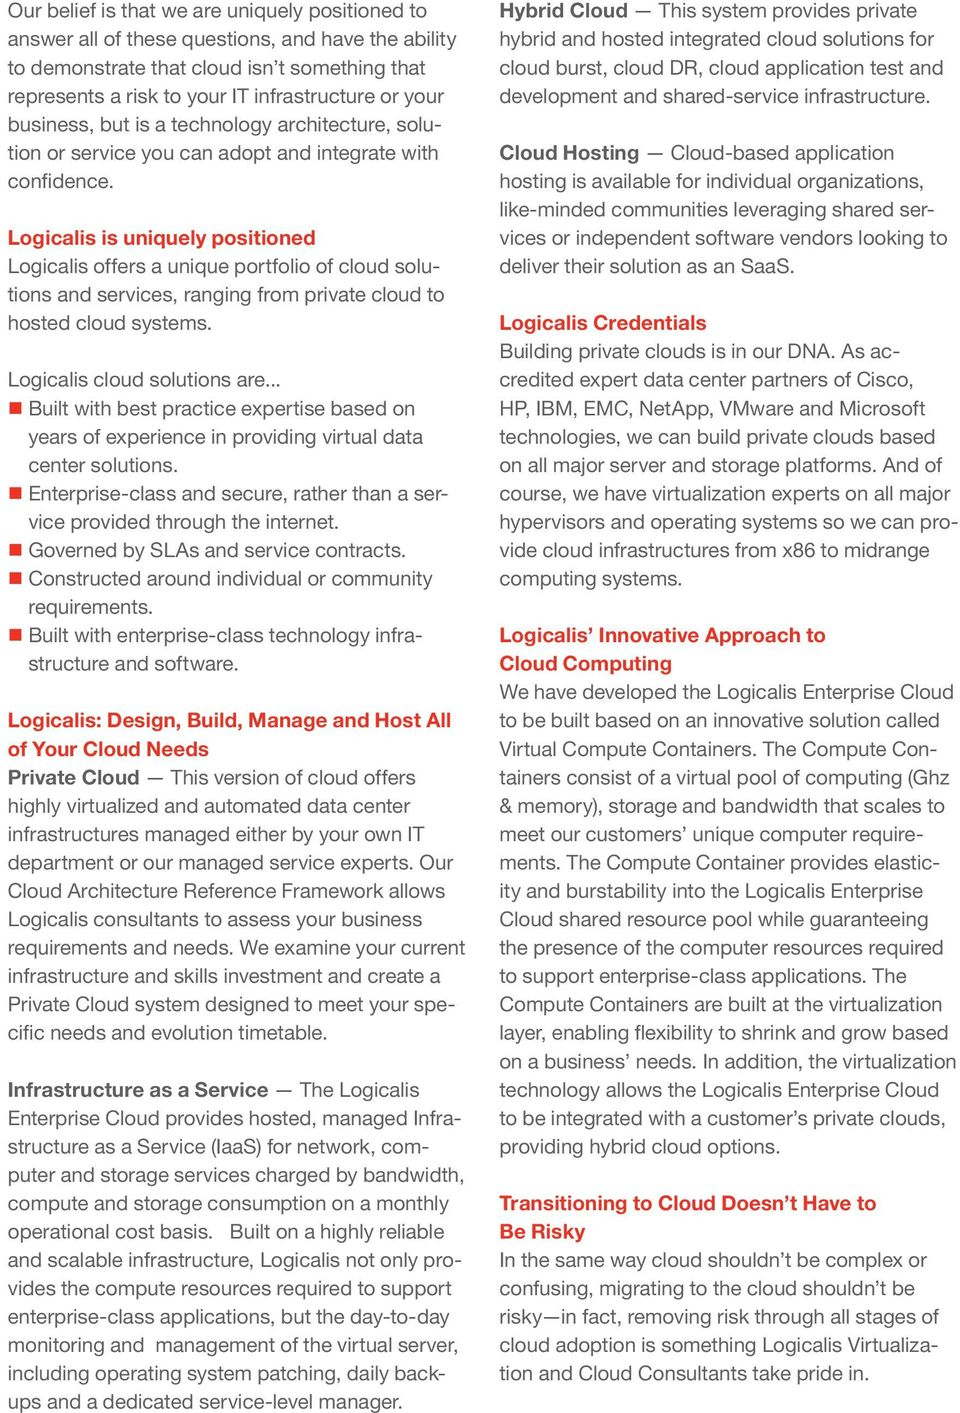 Logicalis is uniquely positioned Logicalis offers a unique portfolio of cloud solutions and services, ranging from private cloud to hosted cloud systems. Logicalis cloud solutions are.